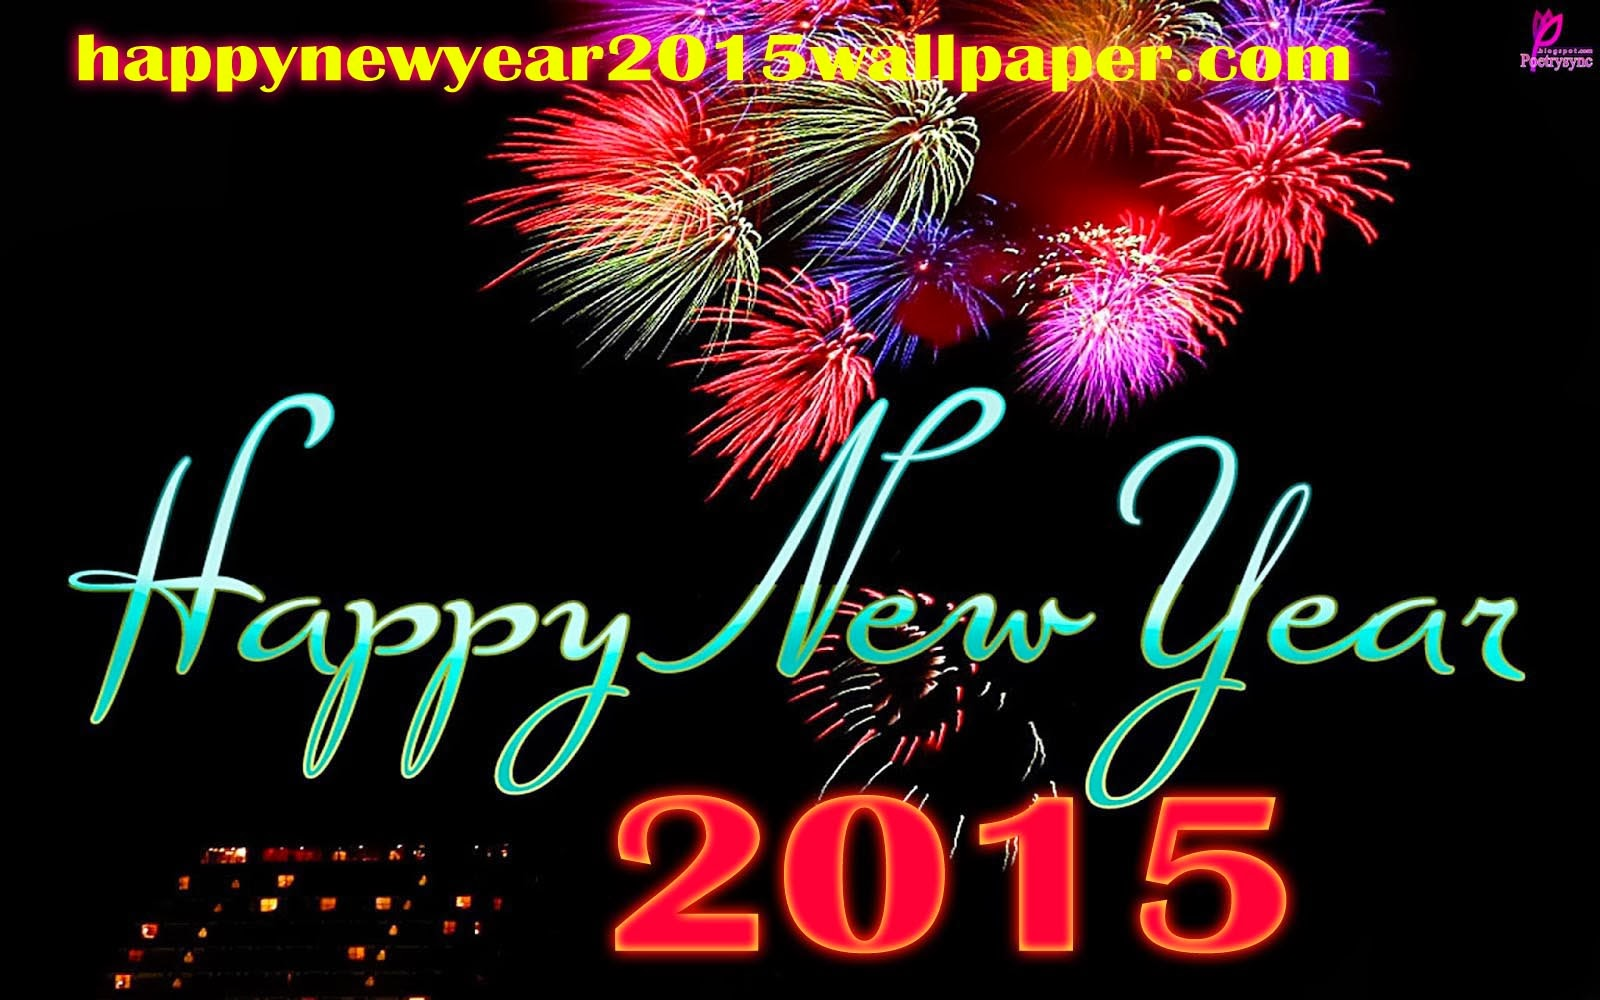 for happy new year 2015 wallpaper new year wishes wallpapers new year 1600x1000